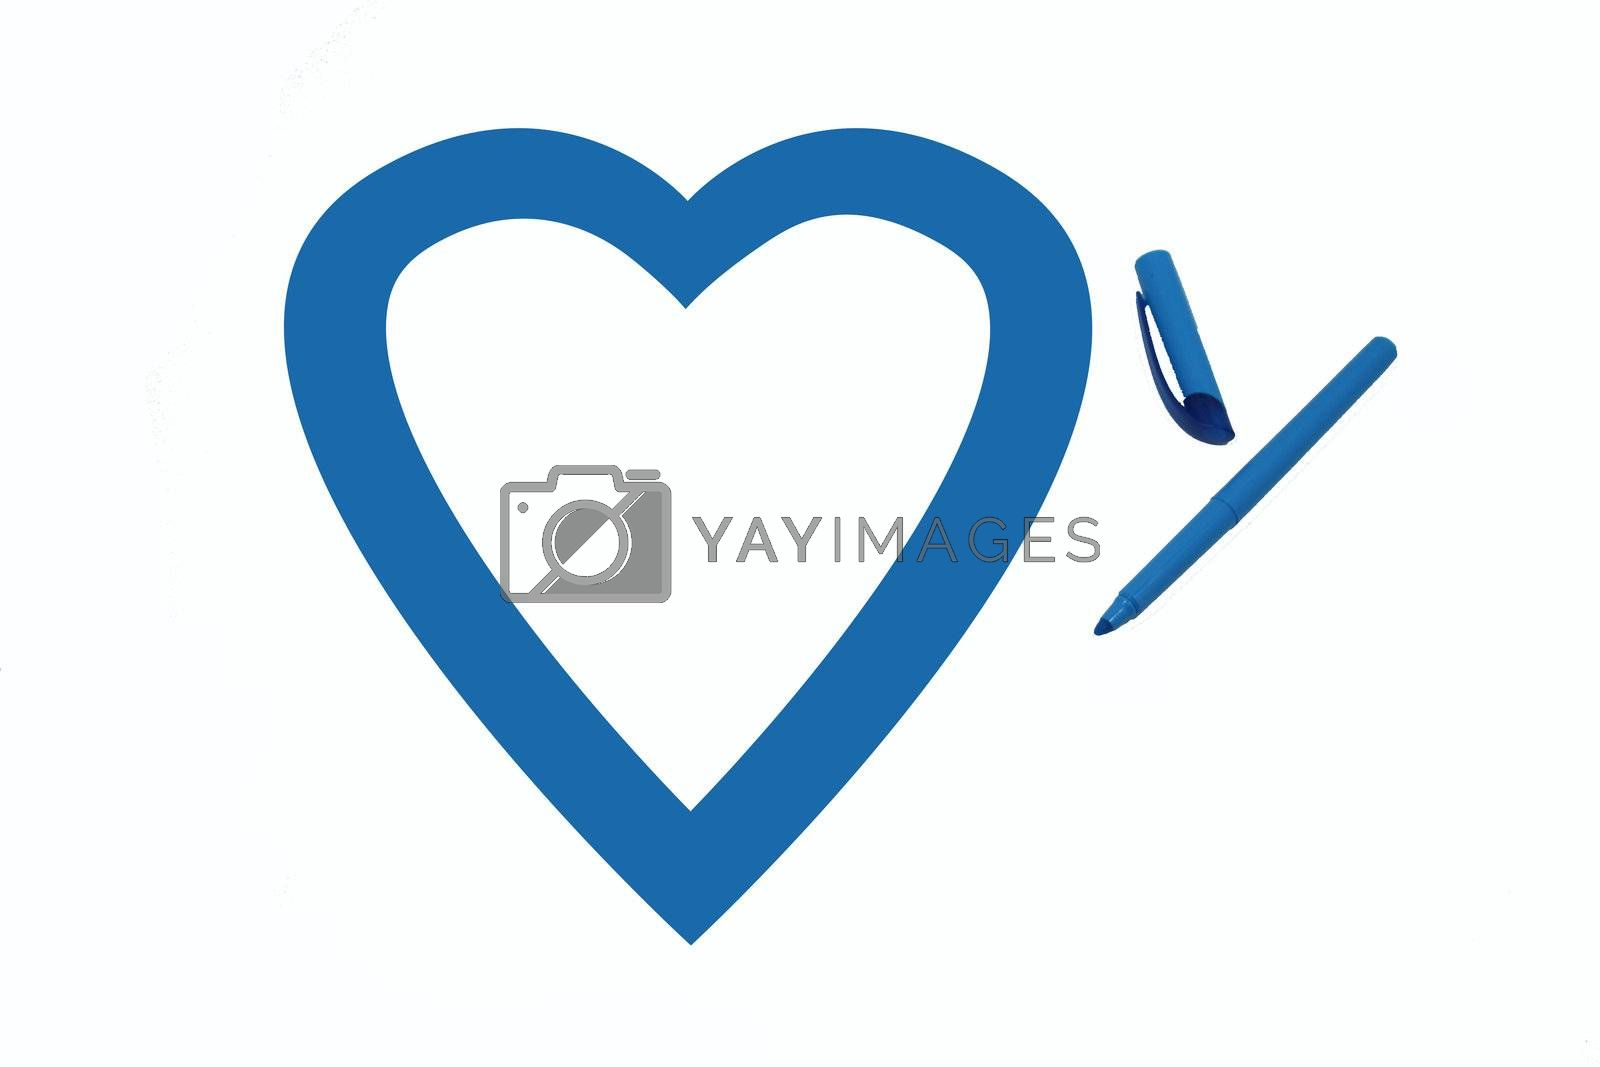 Heart shape colored blue by office highlighter on white background